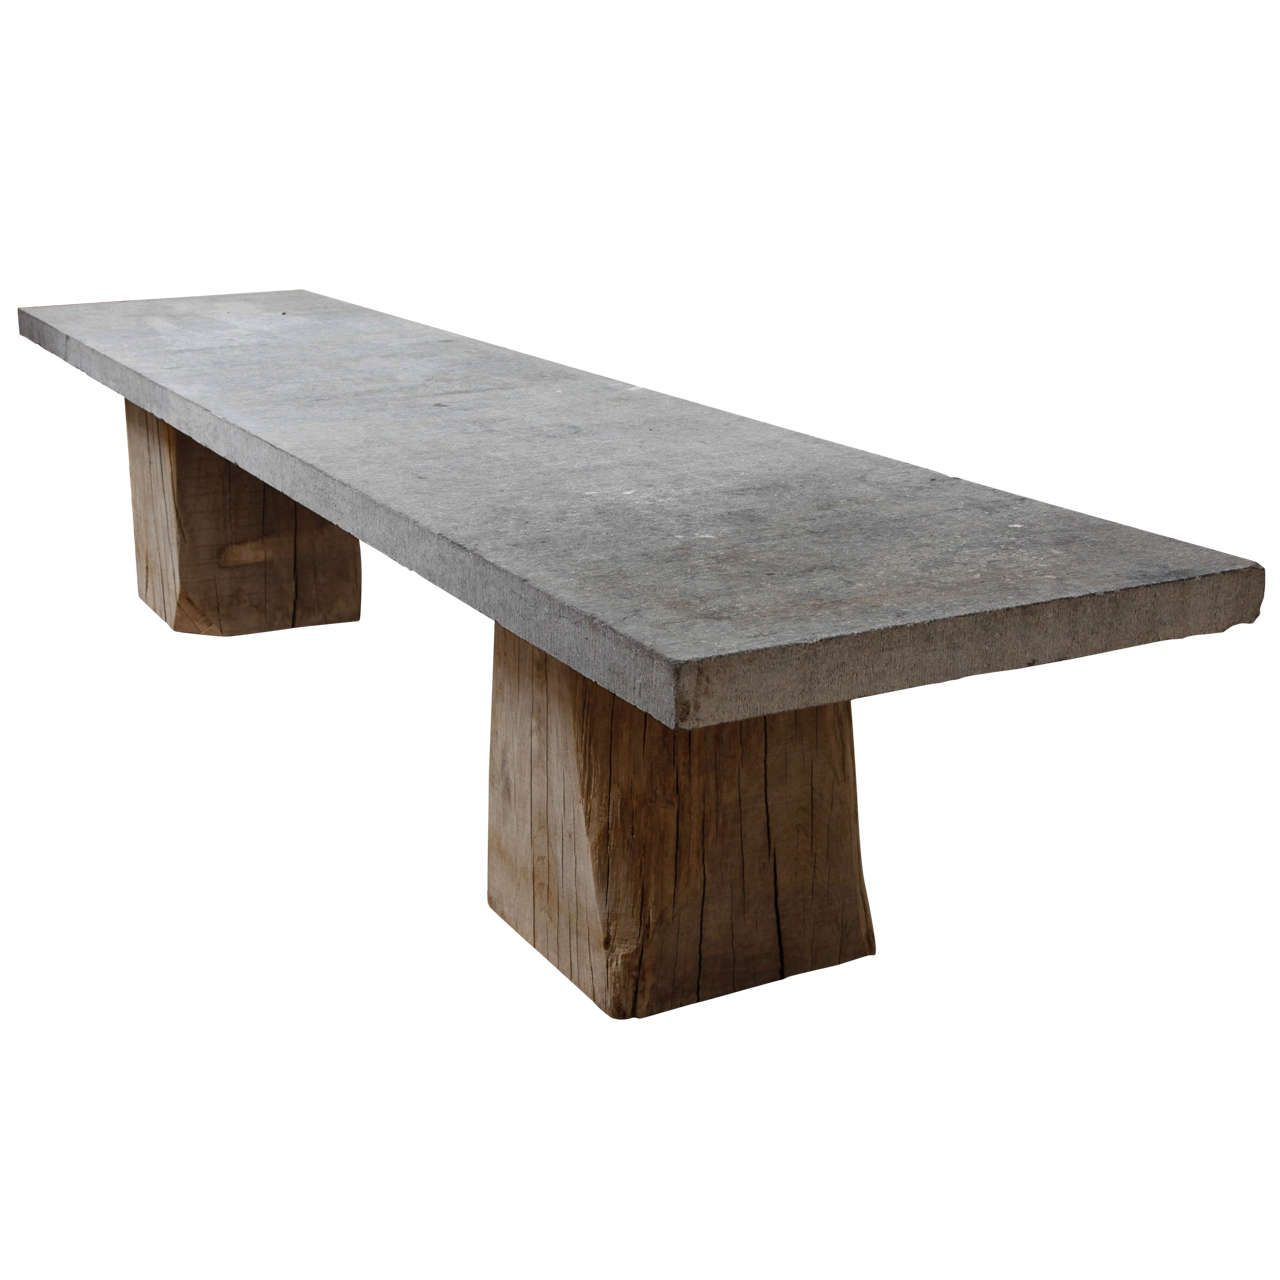 Belgian Blue Stone Table On Tree Trunk Base | From A Unique Collection Of  Antique And Modern Game Tables At ...